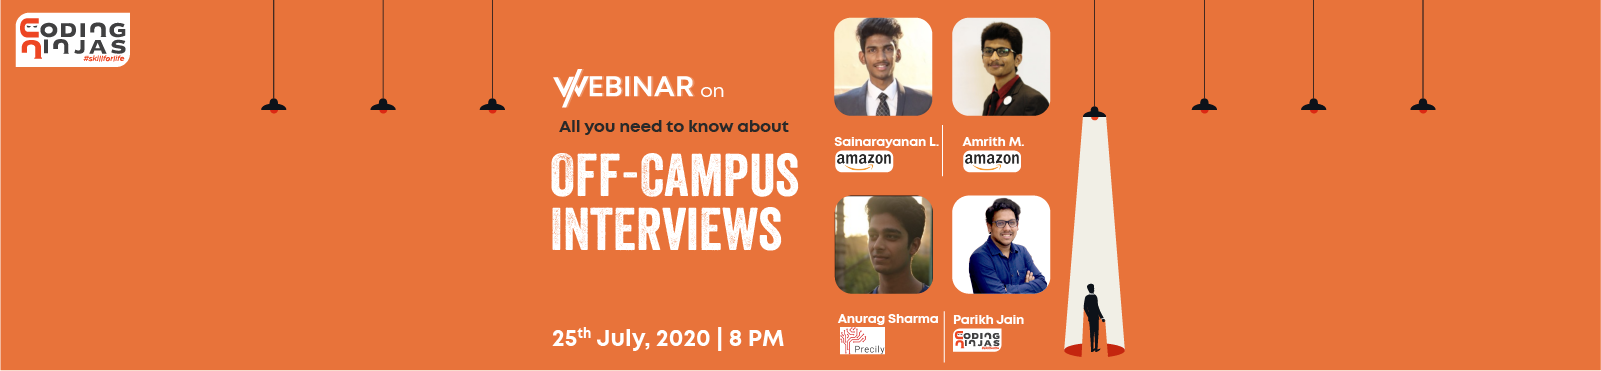 All you need to know about Off-campus interviews